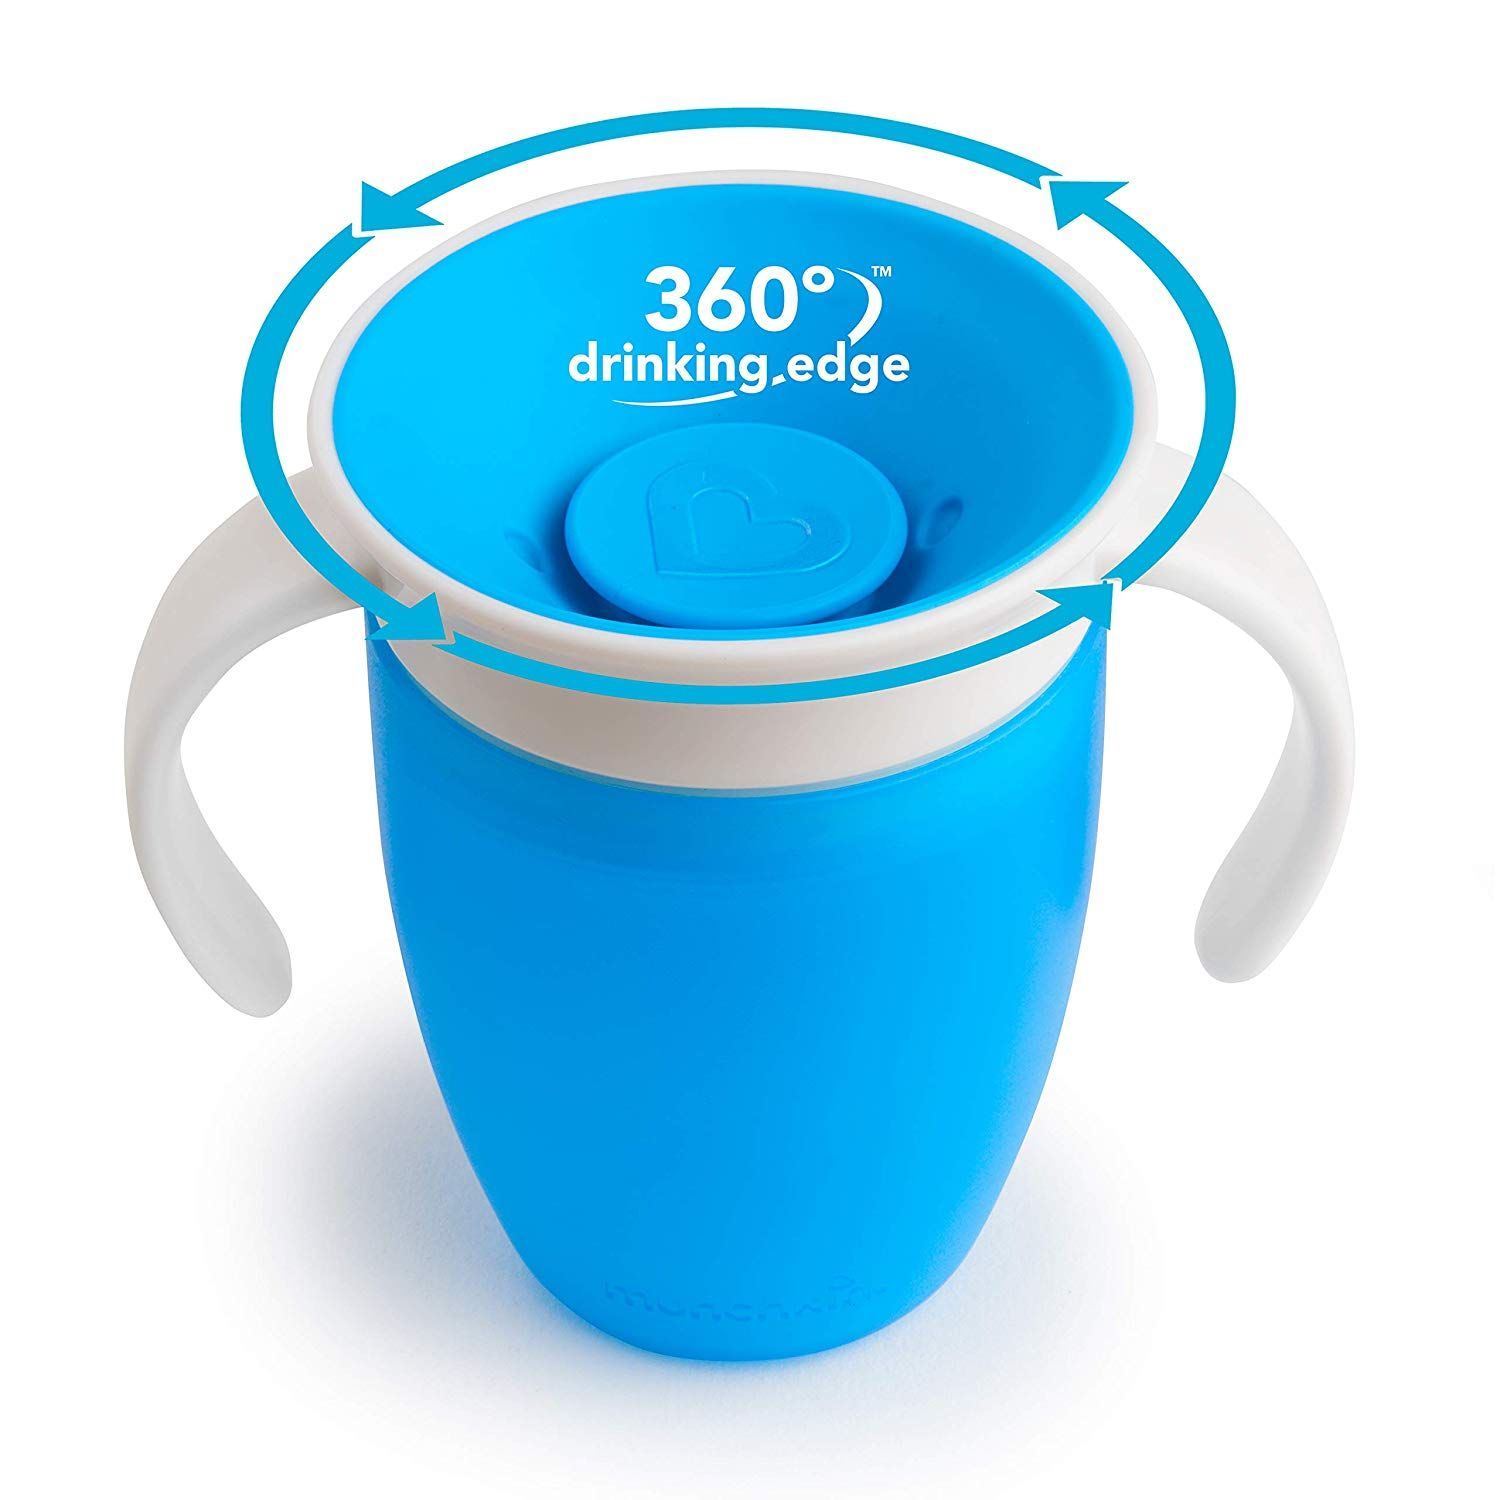 Set Of Two 2 7 Ounce Toddler Cups With Dentist Recommended Spoutless Design 360 Degree Drinking Edge Eliminates Spills Complet In 2020 Toddler Cup Sippy Cup Munchkin